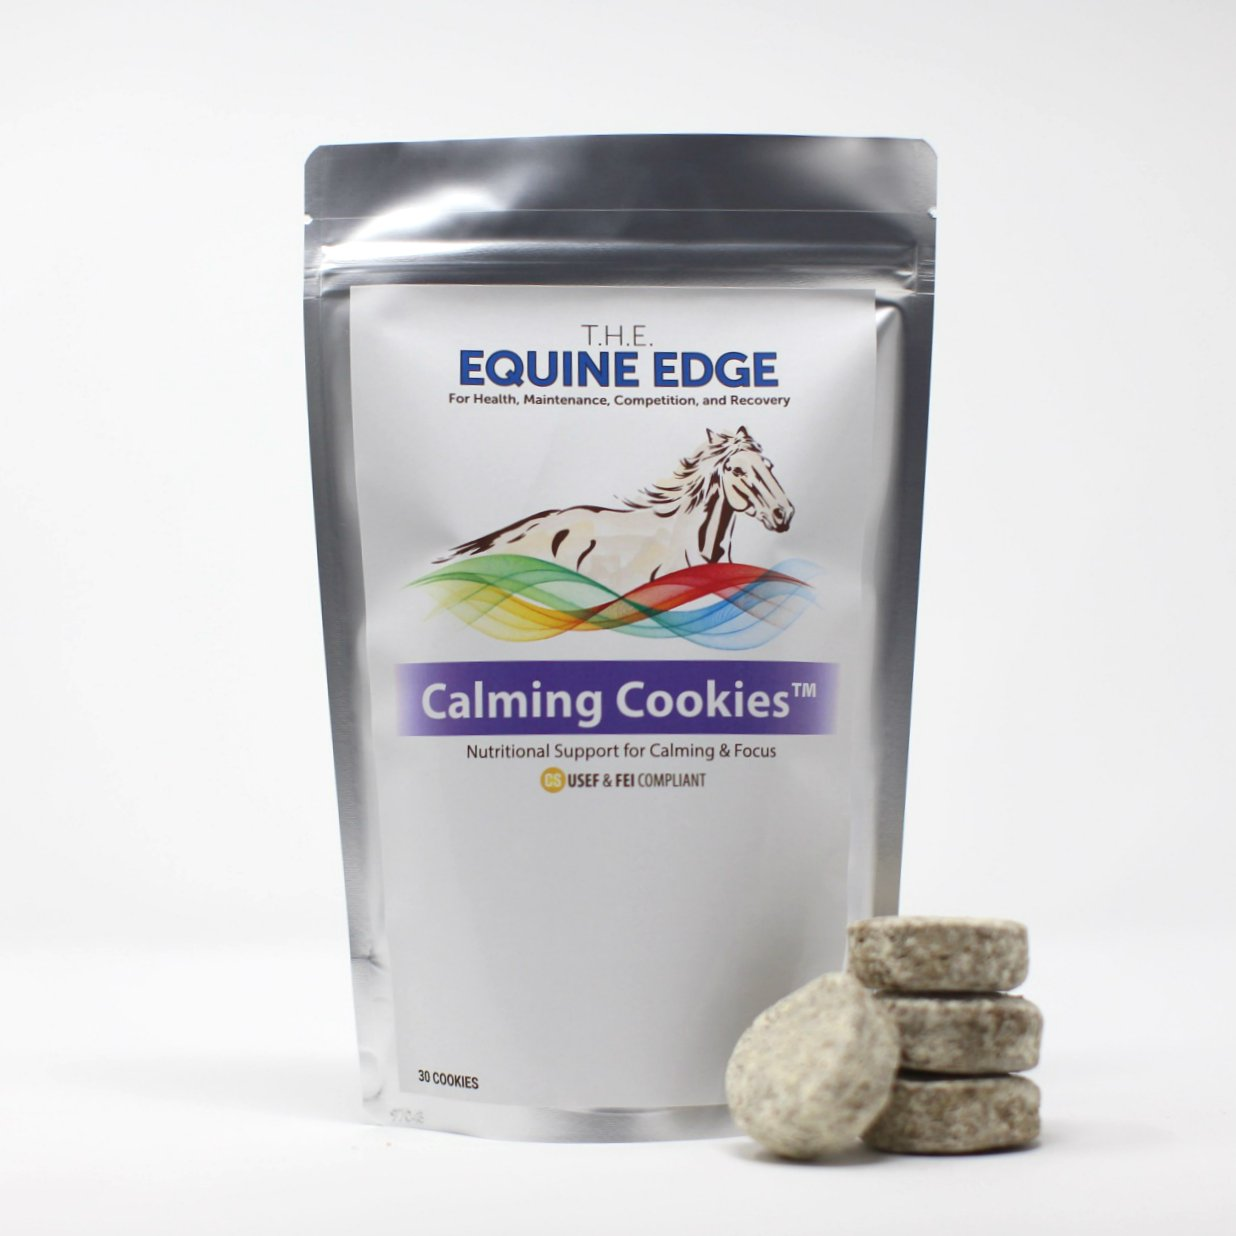 Calming Cookies - Natural Horse Supplements for Calming & Focus, 30 Cookies by T.H.E. Equine Edge